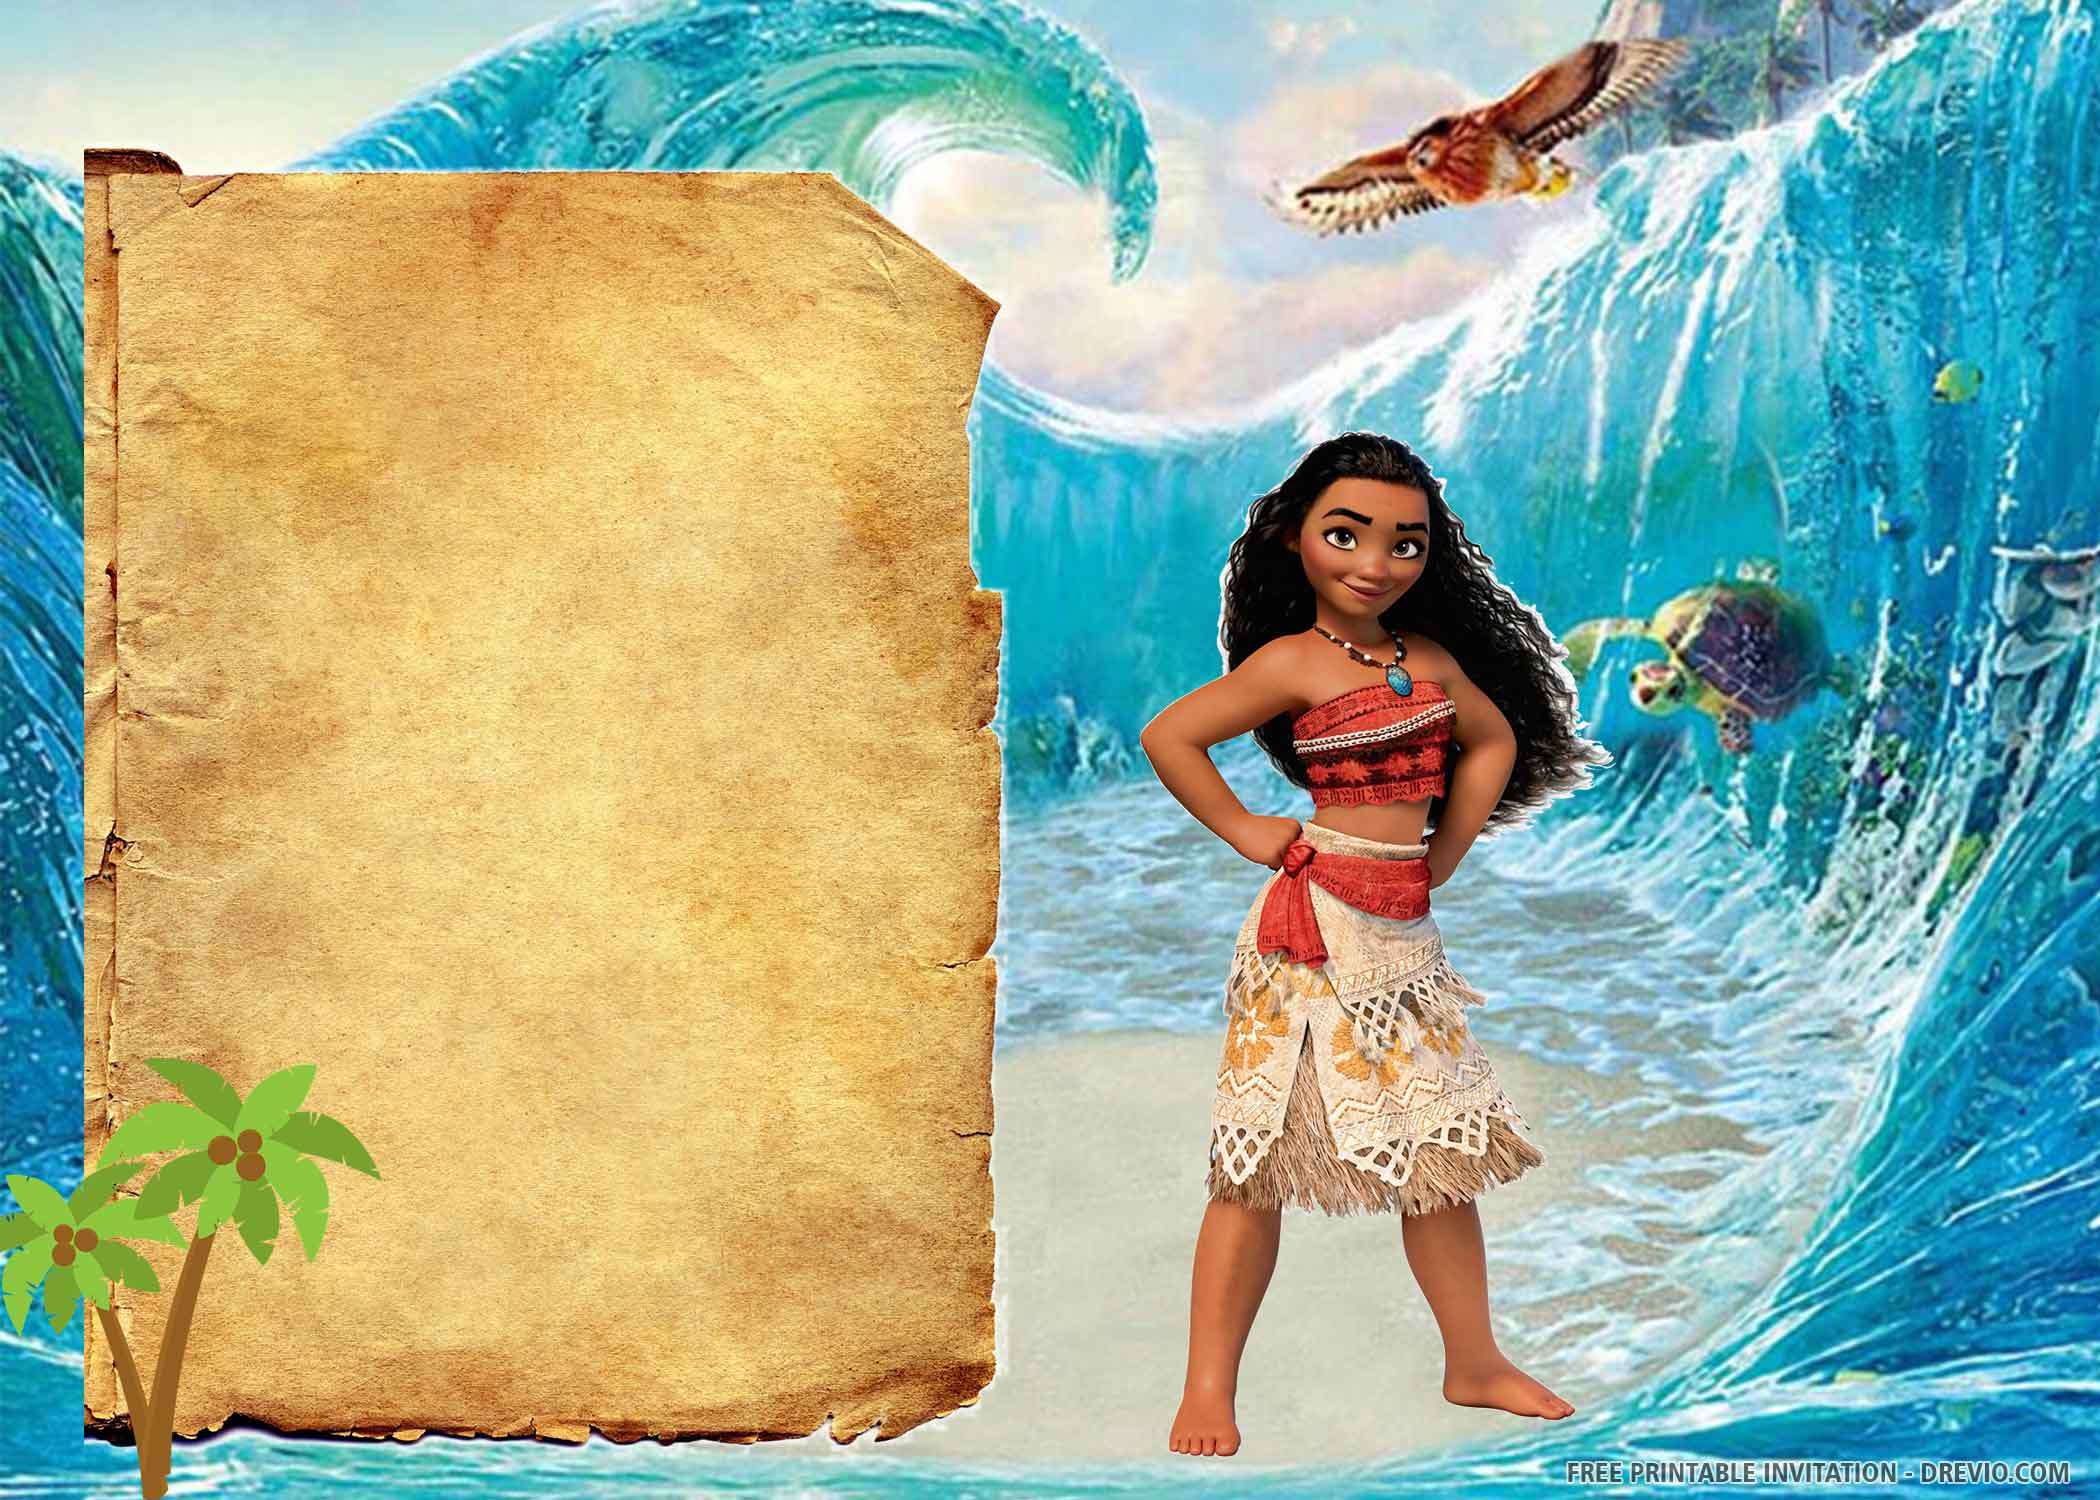 Free Printable The Brave Moana Birthday Invitation